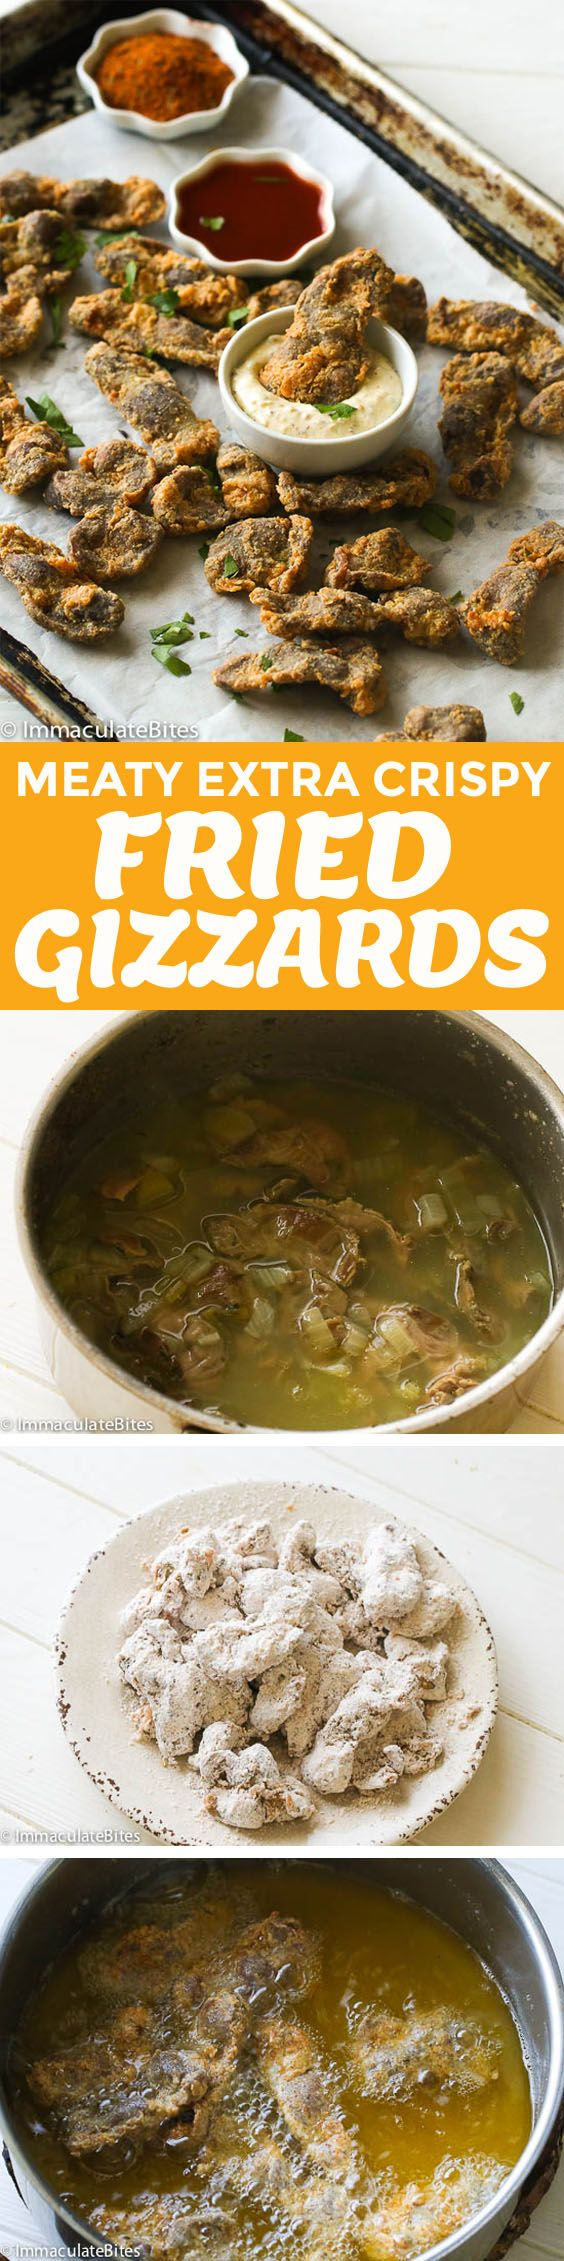 how to make chicken gizzards